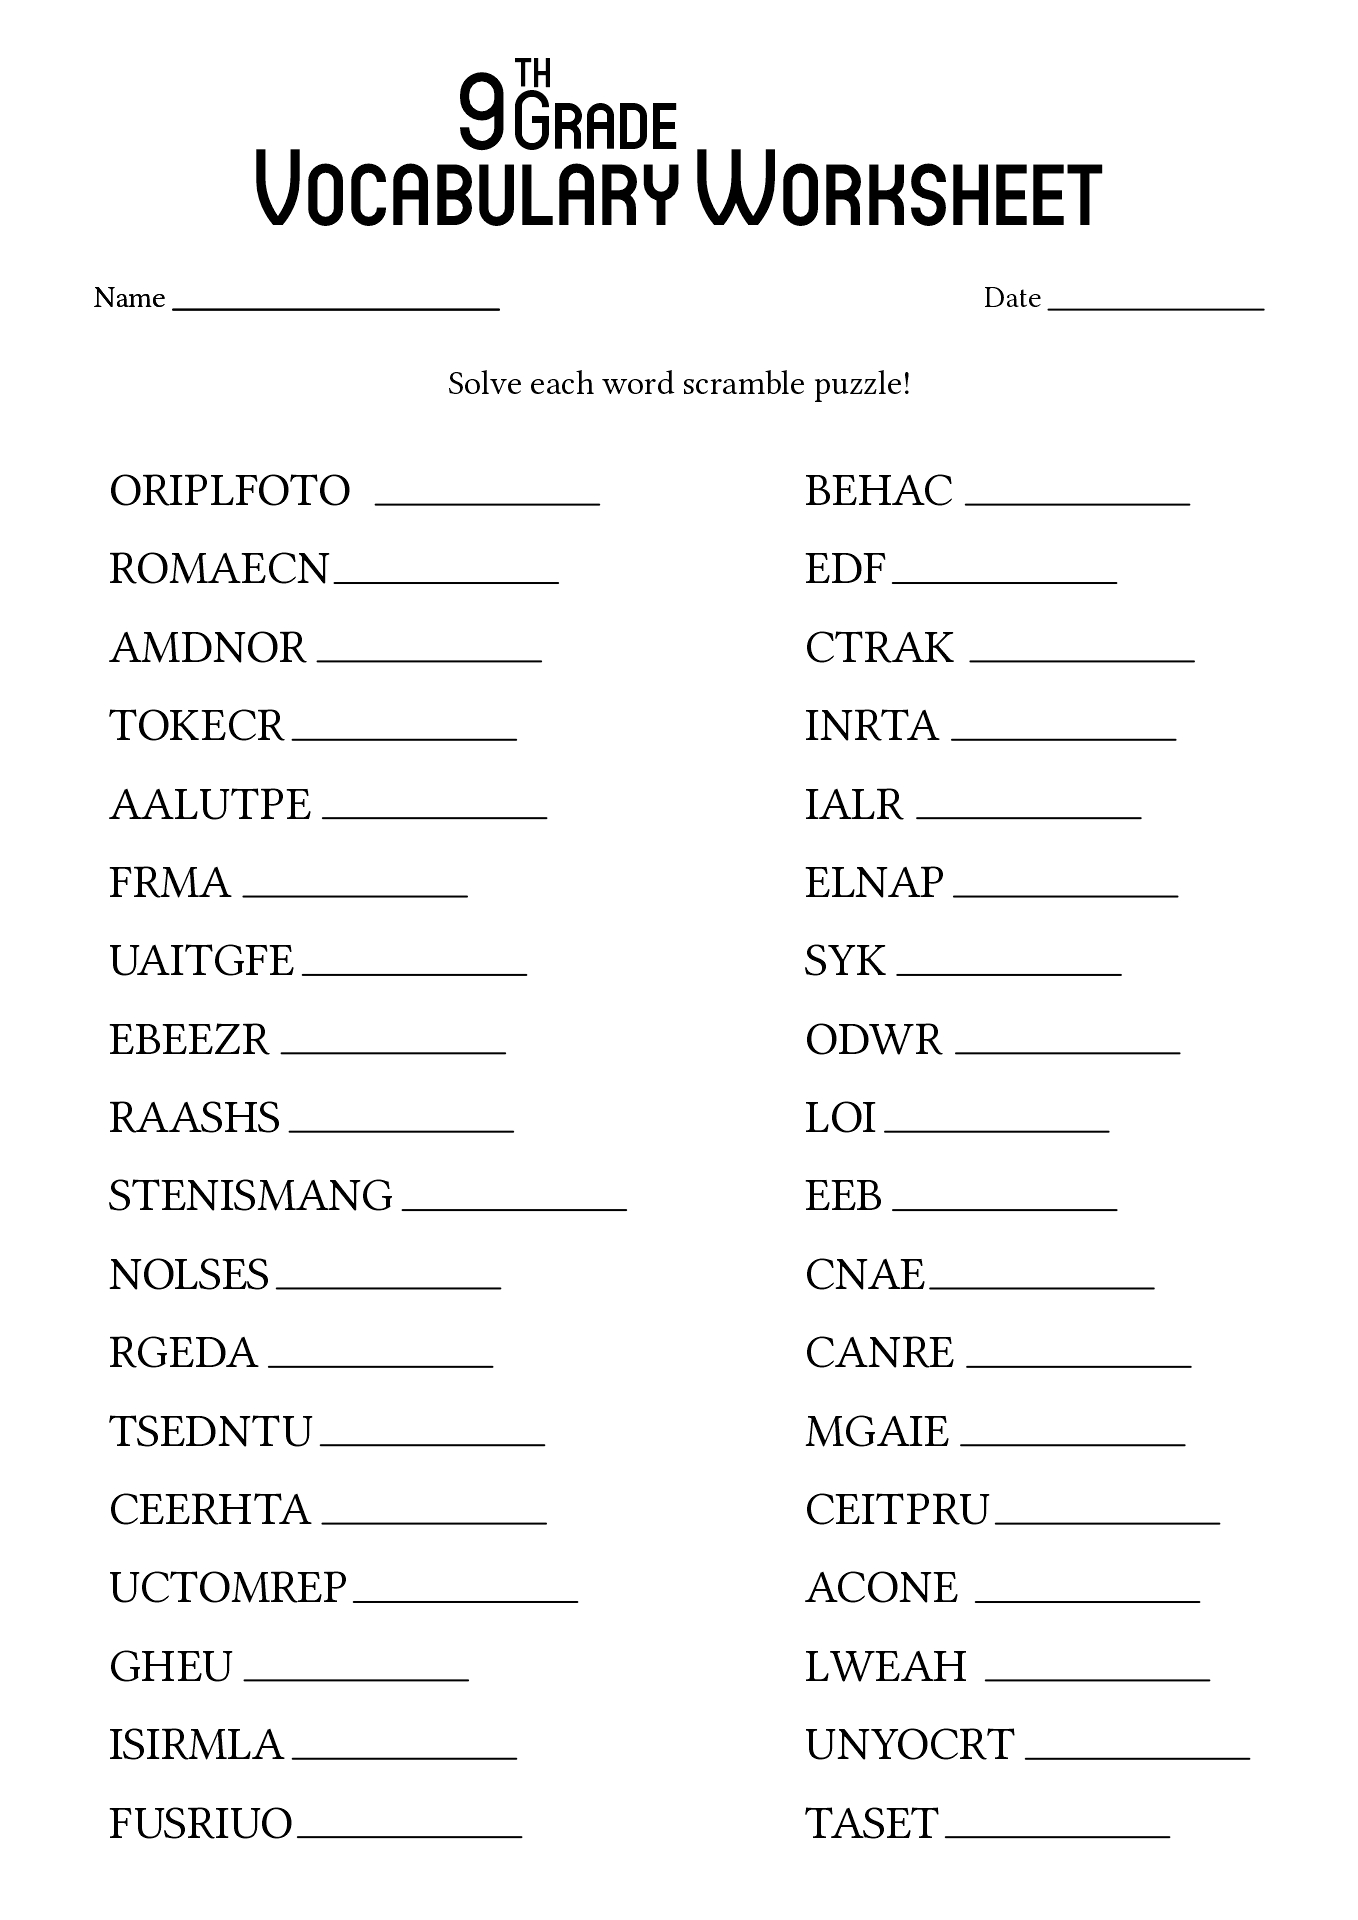 17 Best Images Of 9th Grade Worksheets Spelling Words